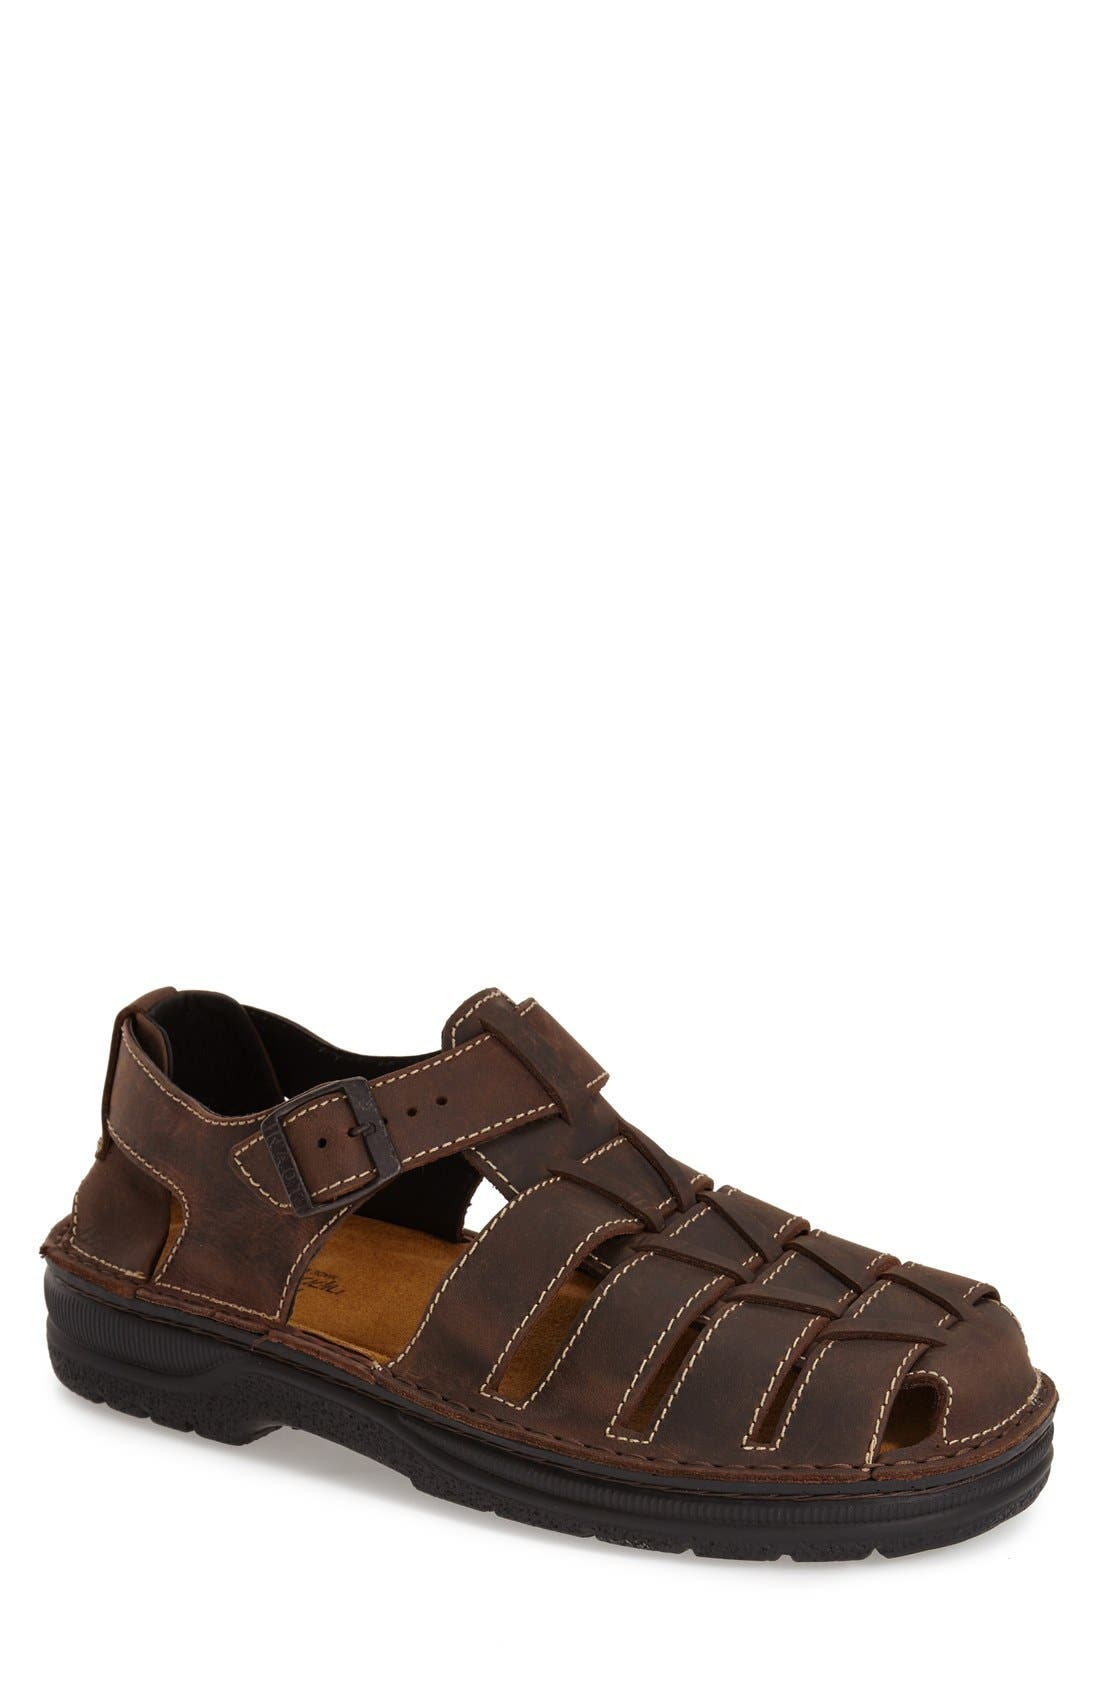 Main Image - Naot Julius Fisherman Sandal (Men)